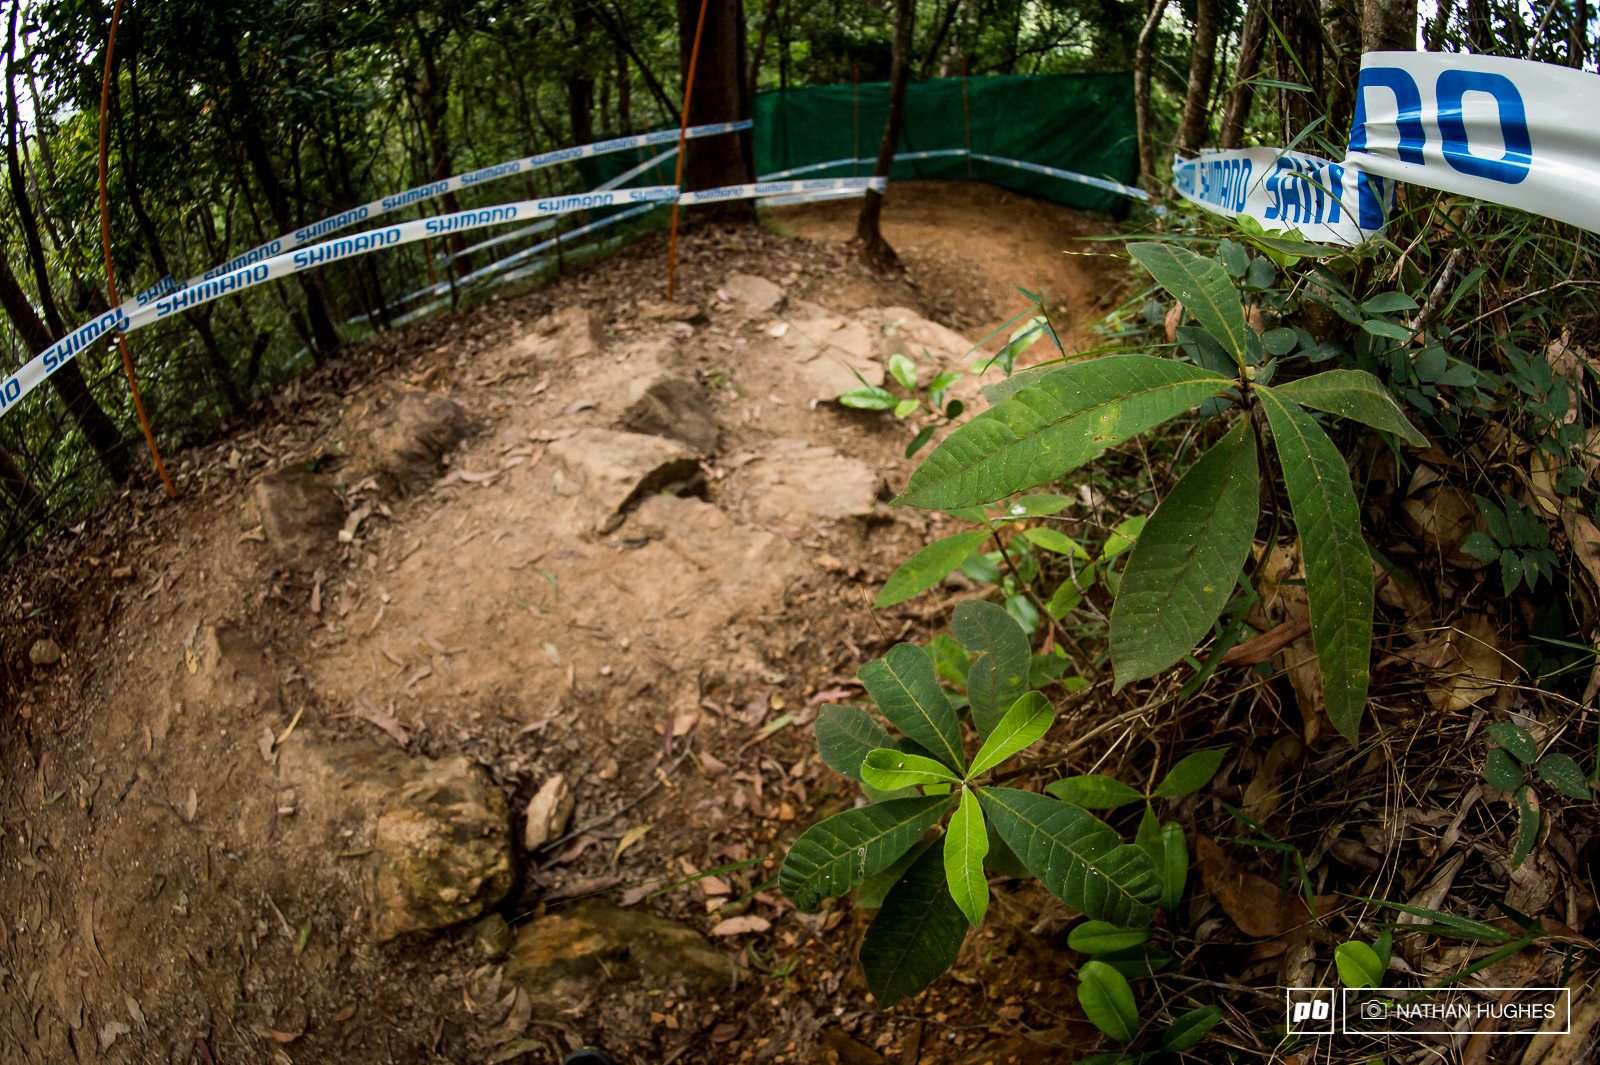 Sweeping berms interspersed with rock steps kick things off high up in the jungle.